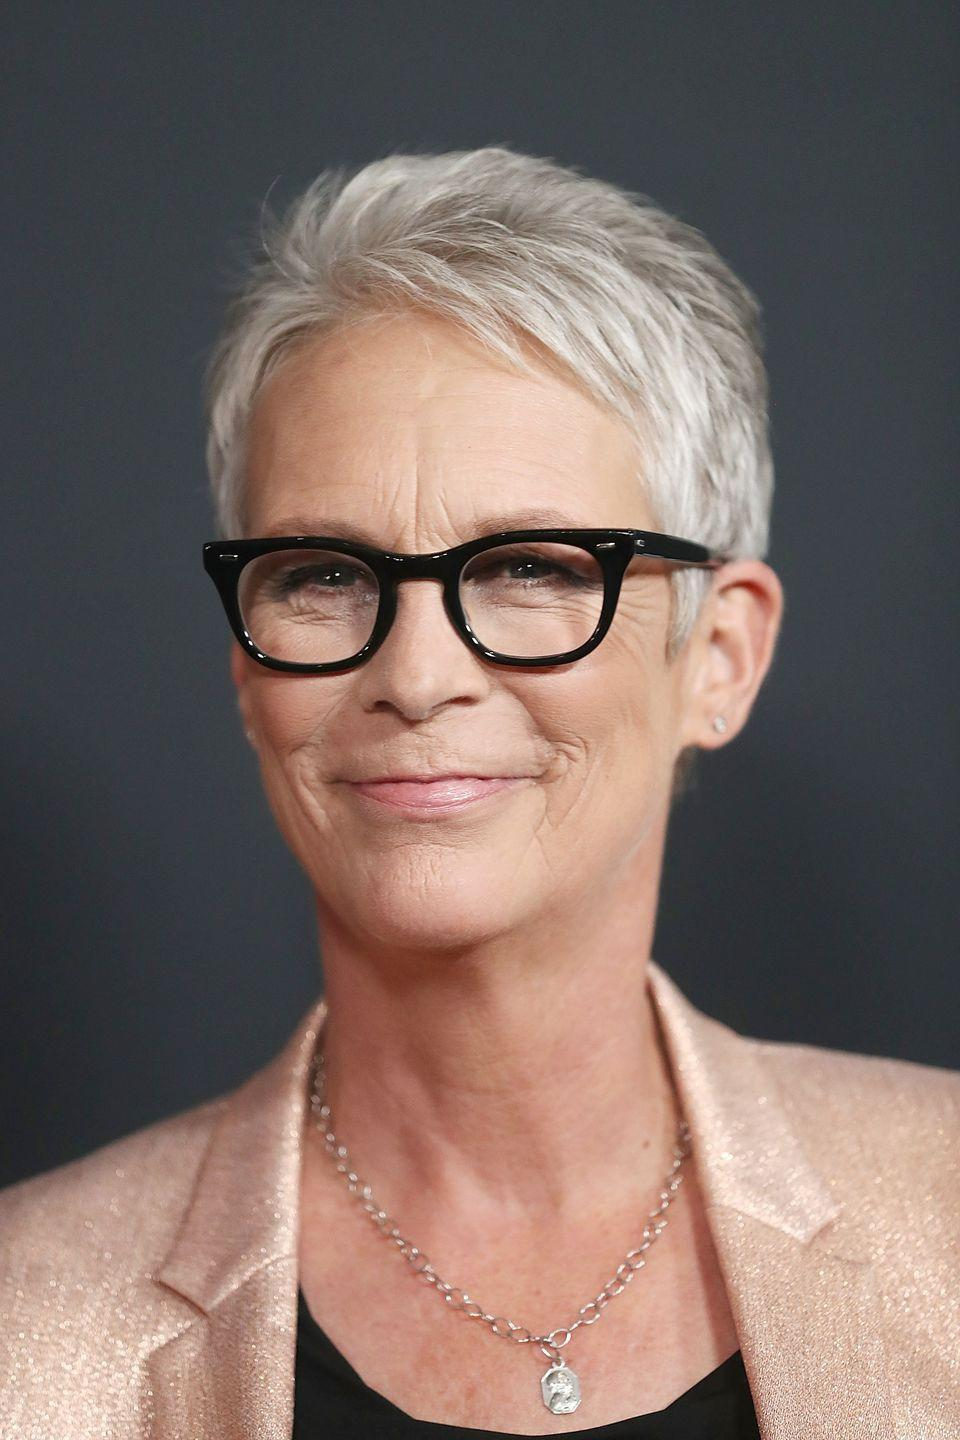 <p>For silver hair like<strong> Jamie Lee Curtis</strong>, ask your colorist for a cool toner or gloss to neutralize any brassiness. Or try a cool-toned gloss, which also enhances shine and dimension. </p>